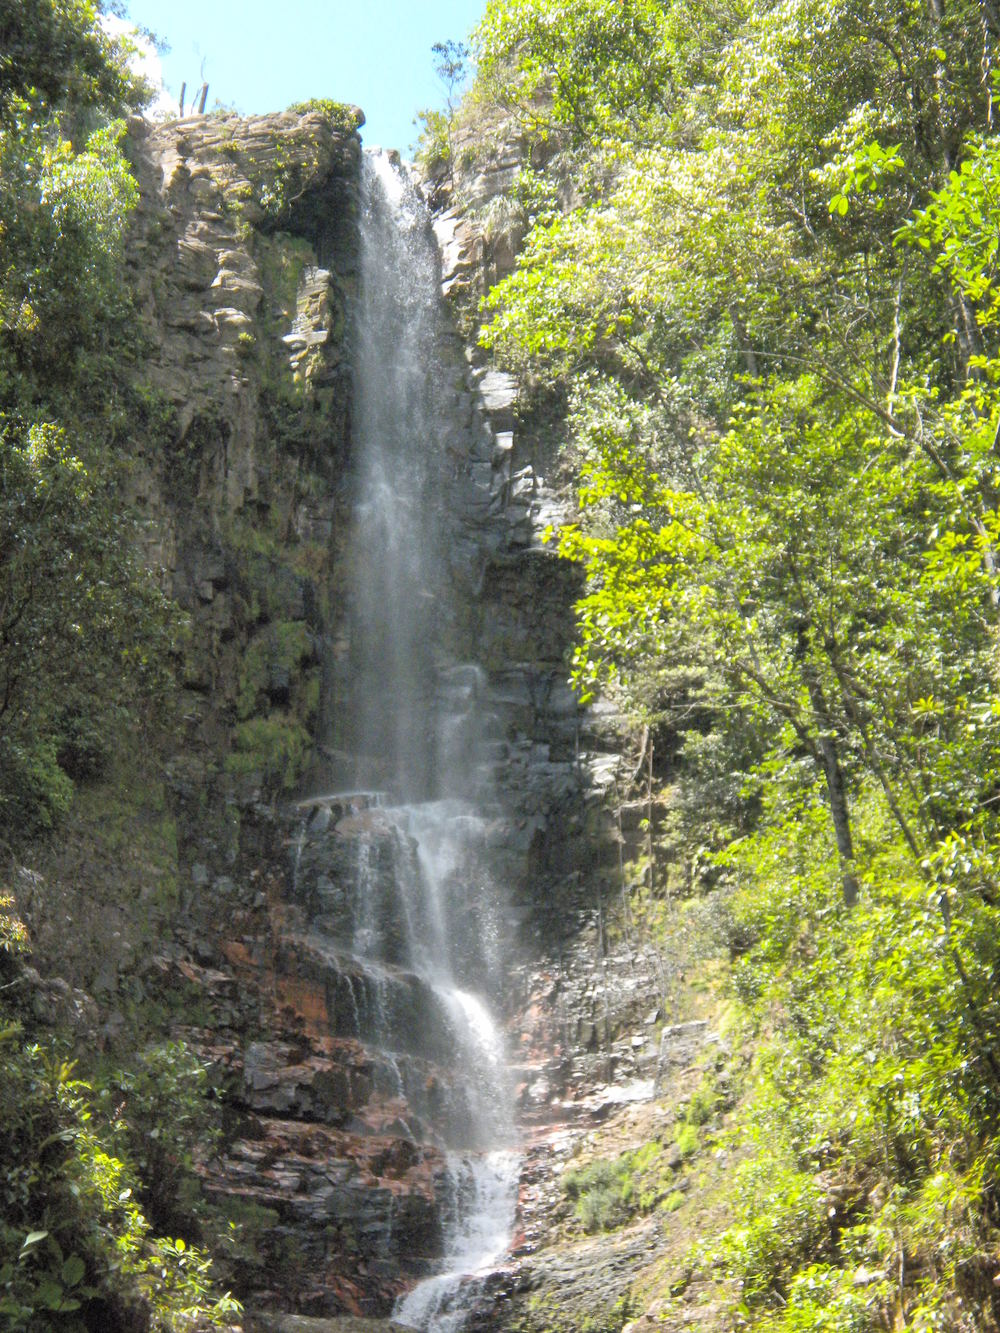 Waterfall near Salto Agua Fria